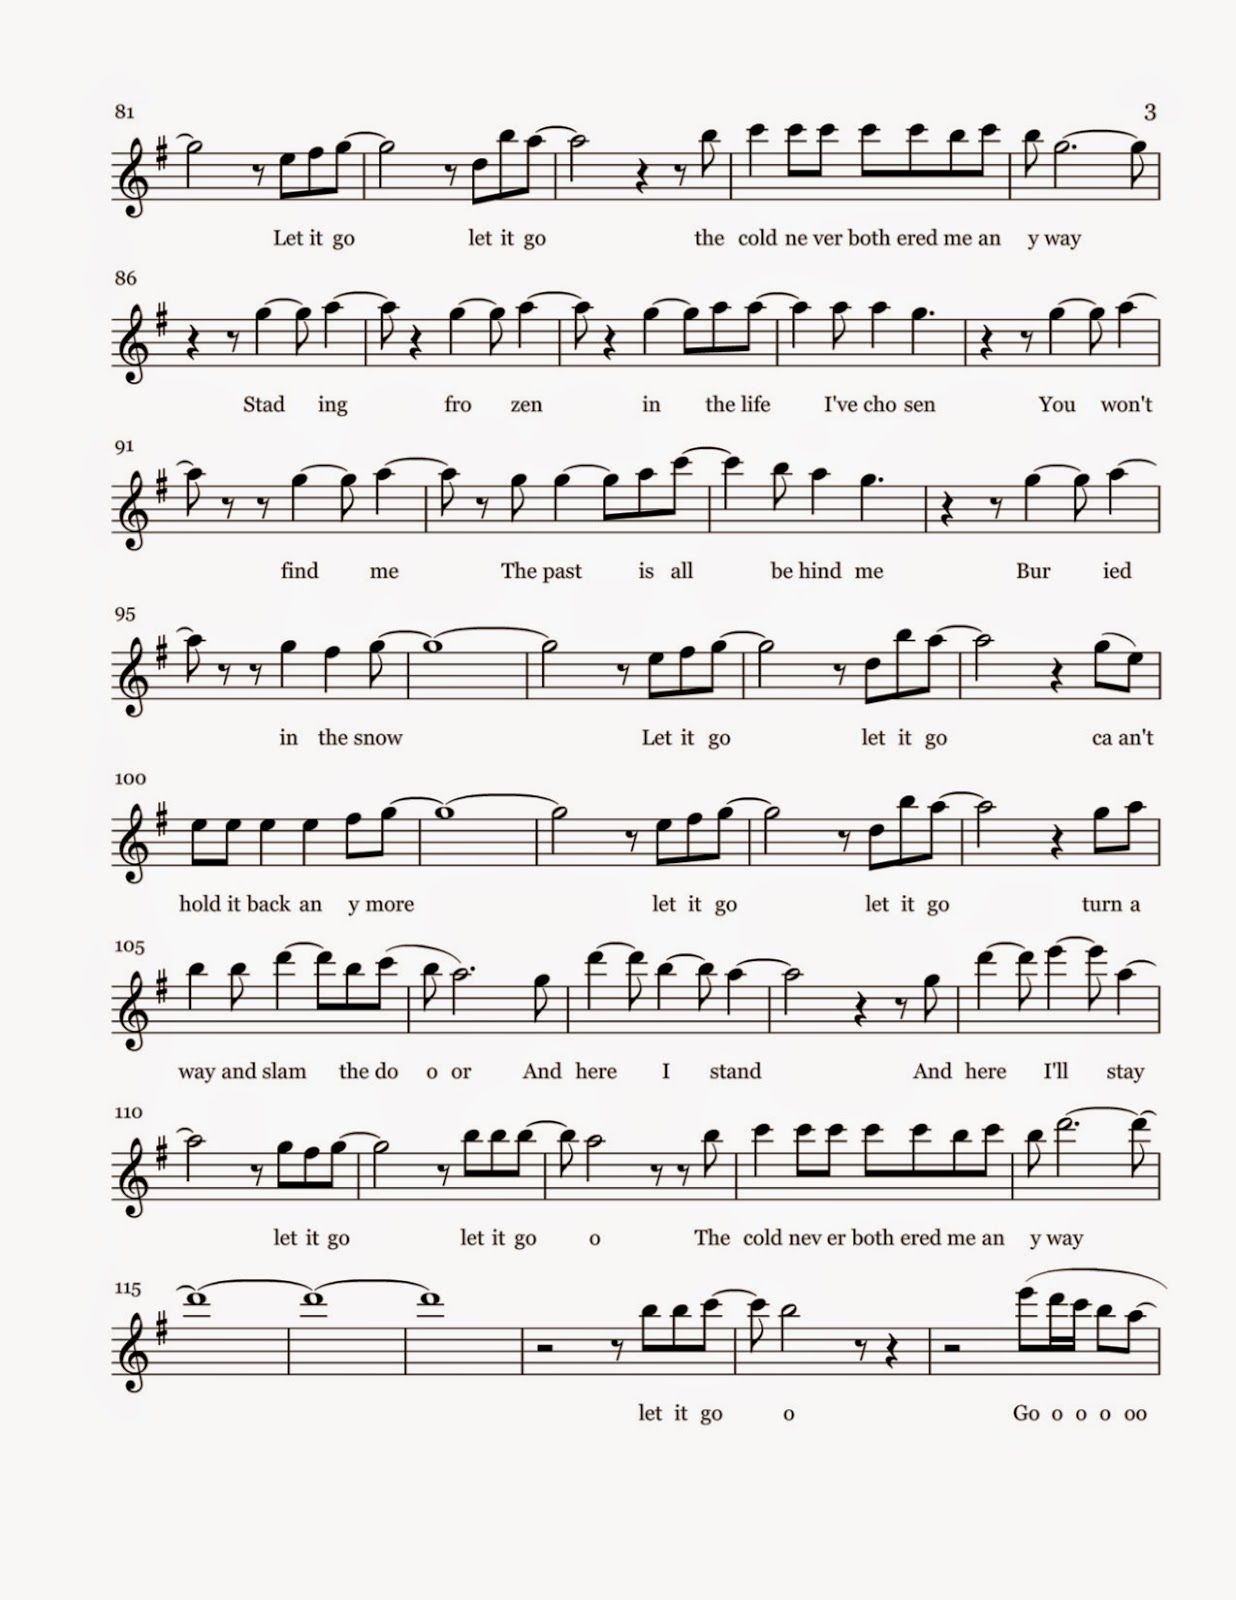 Flute Sheet Music Let It Go